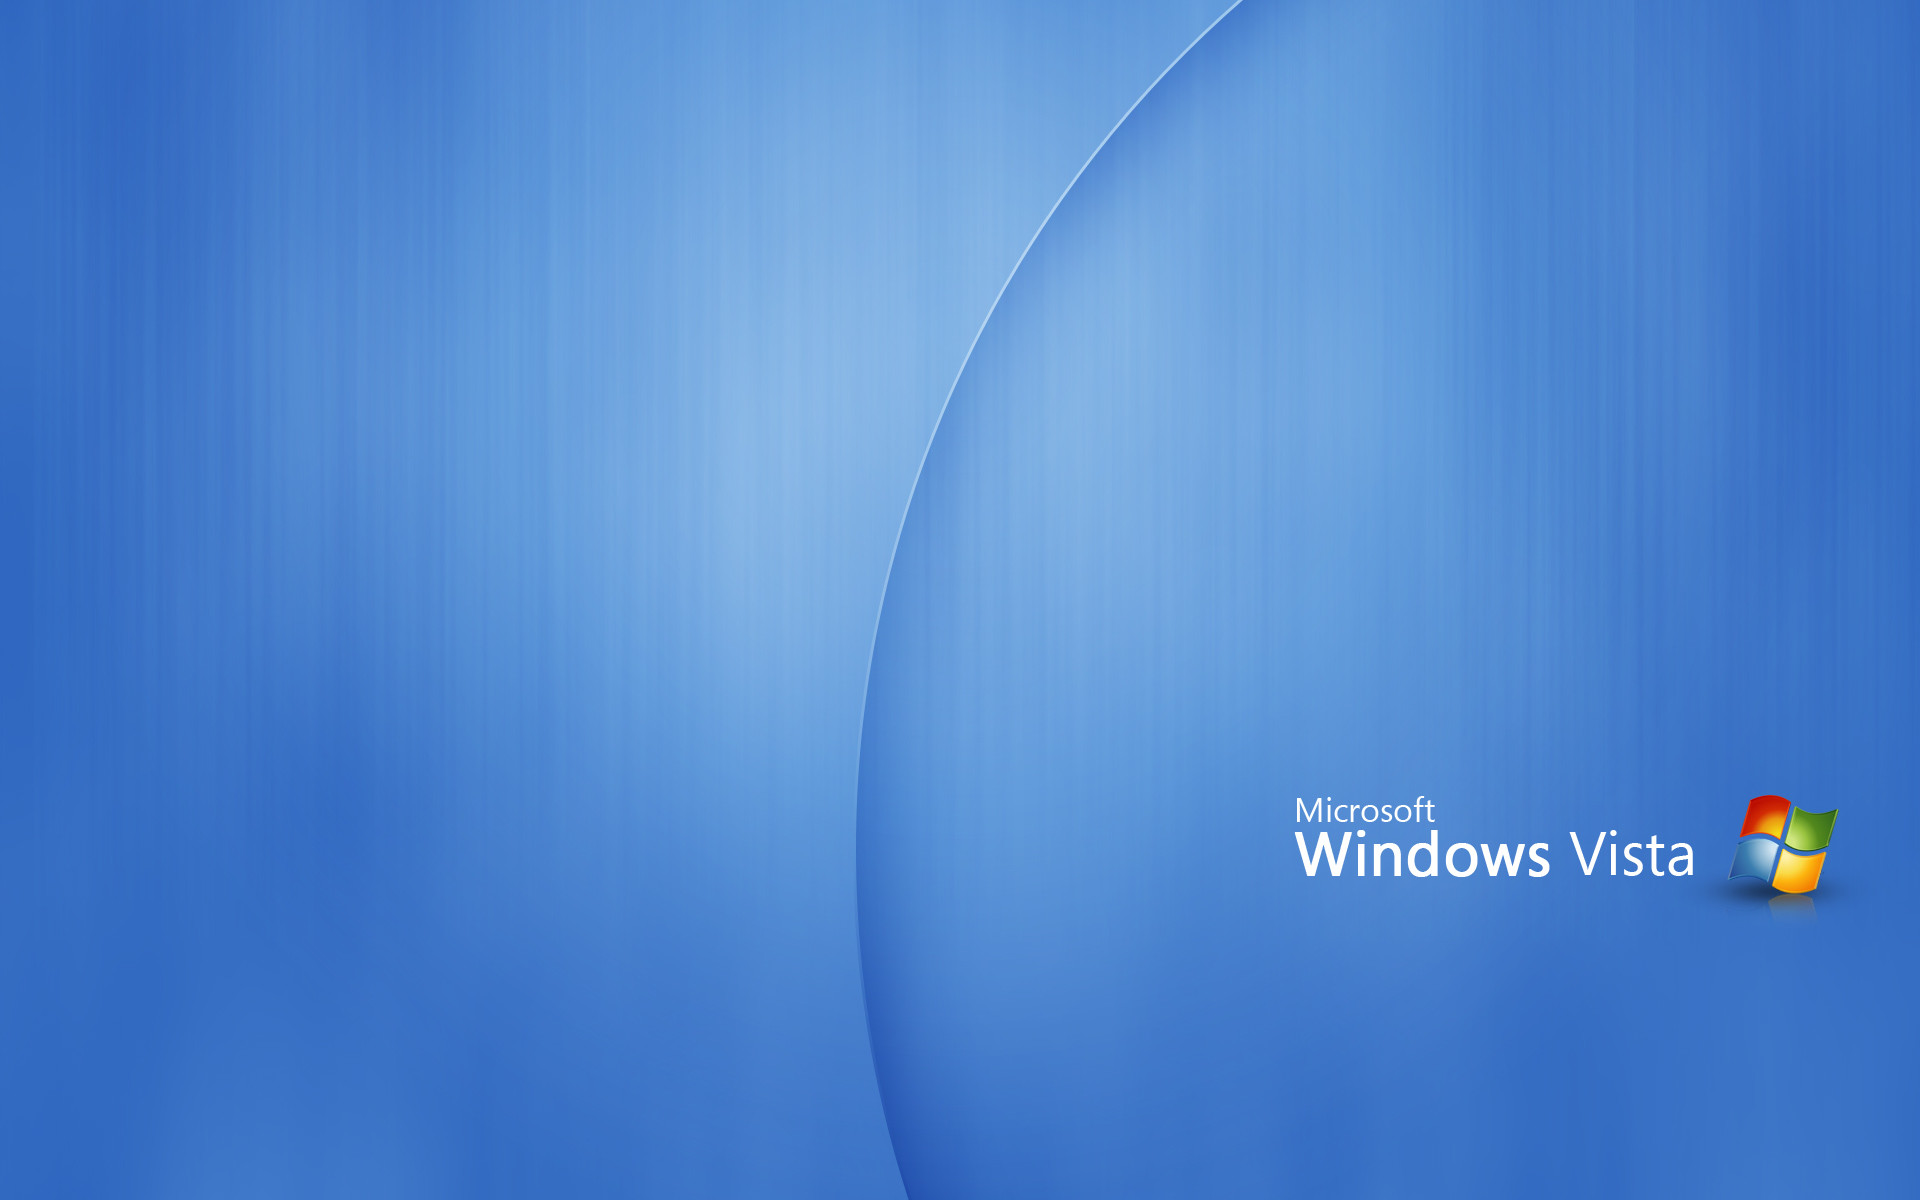 free wallpaper and screensavers by microsoft